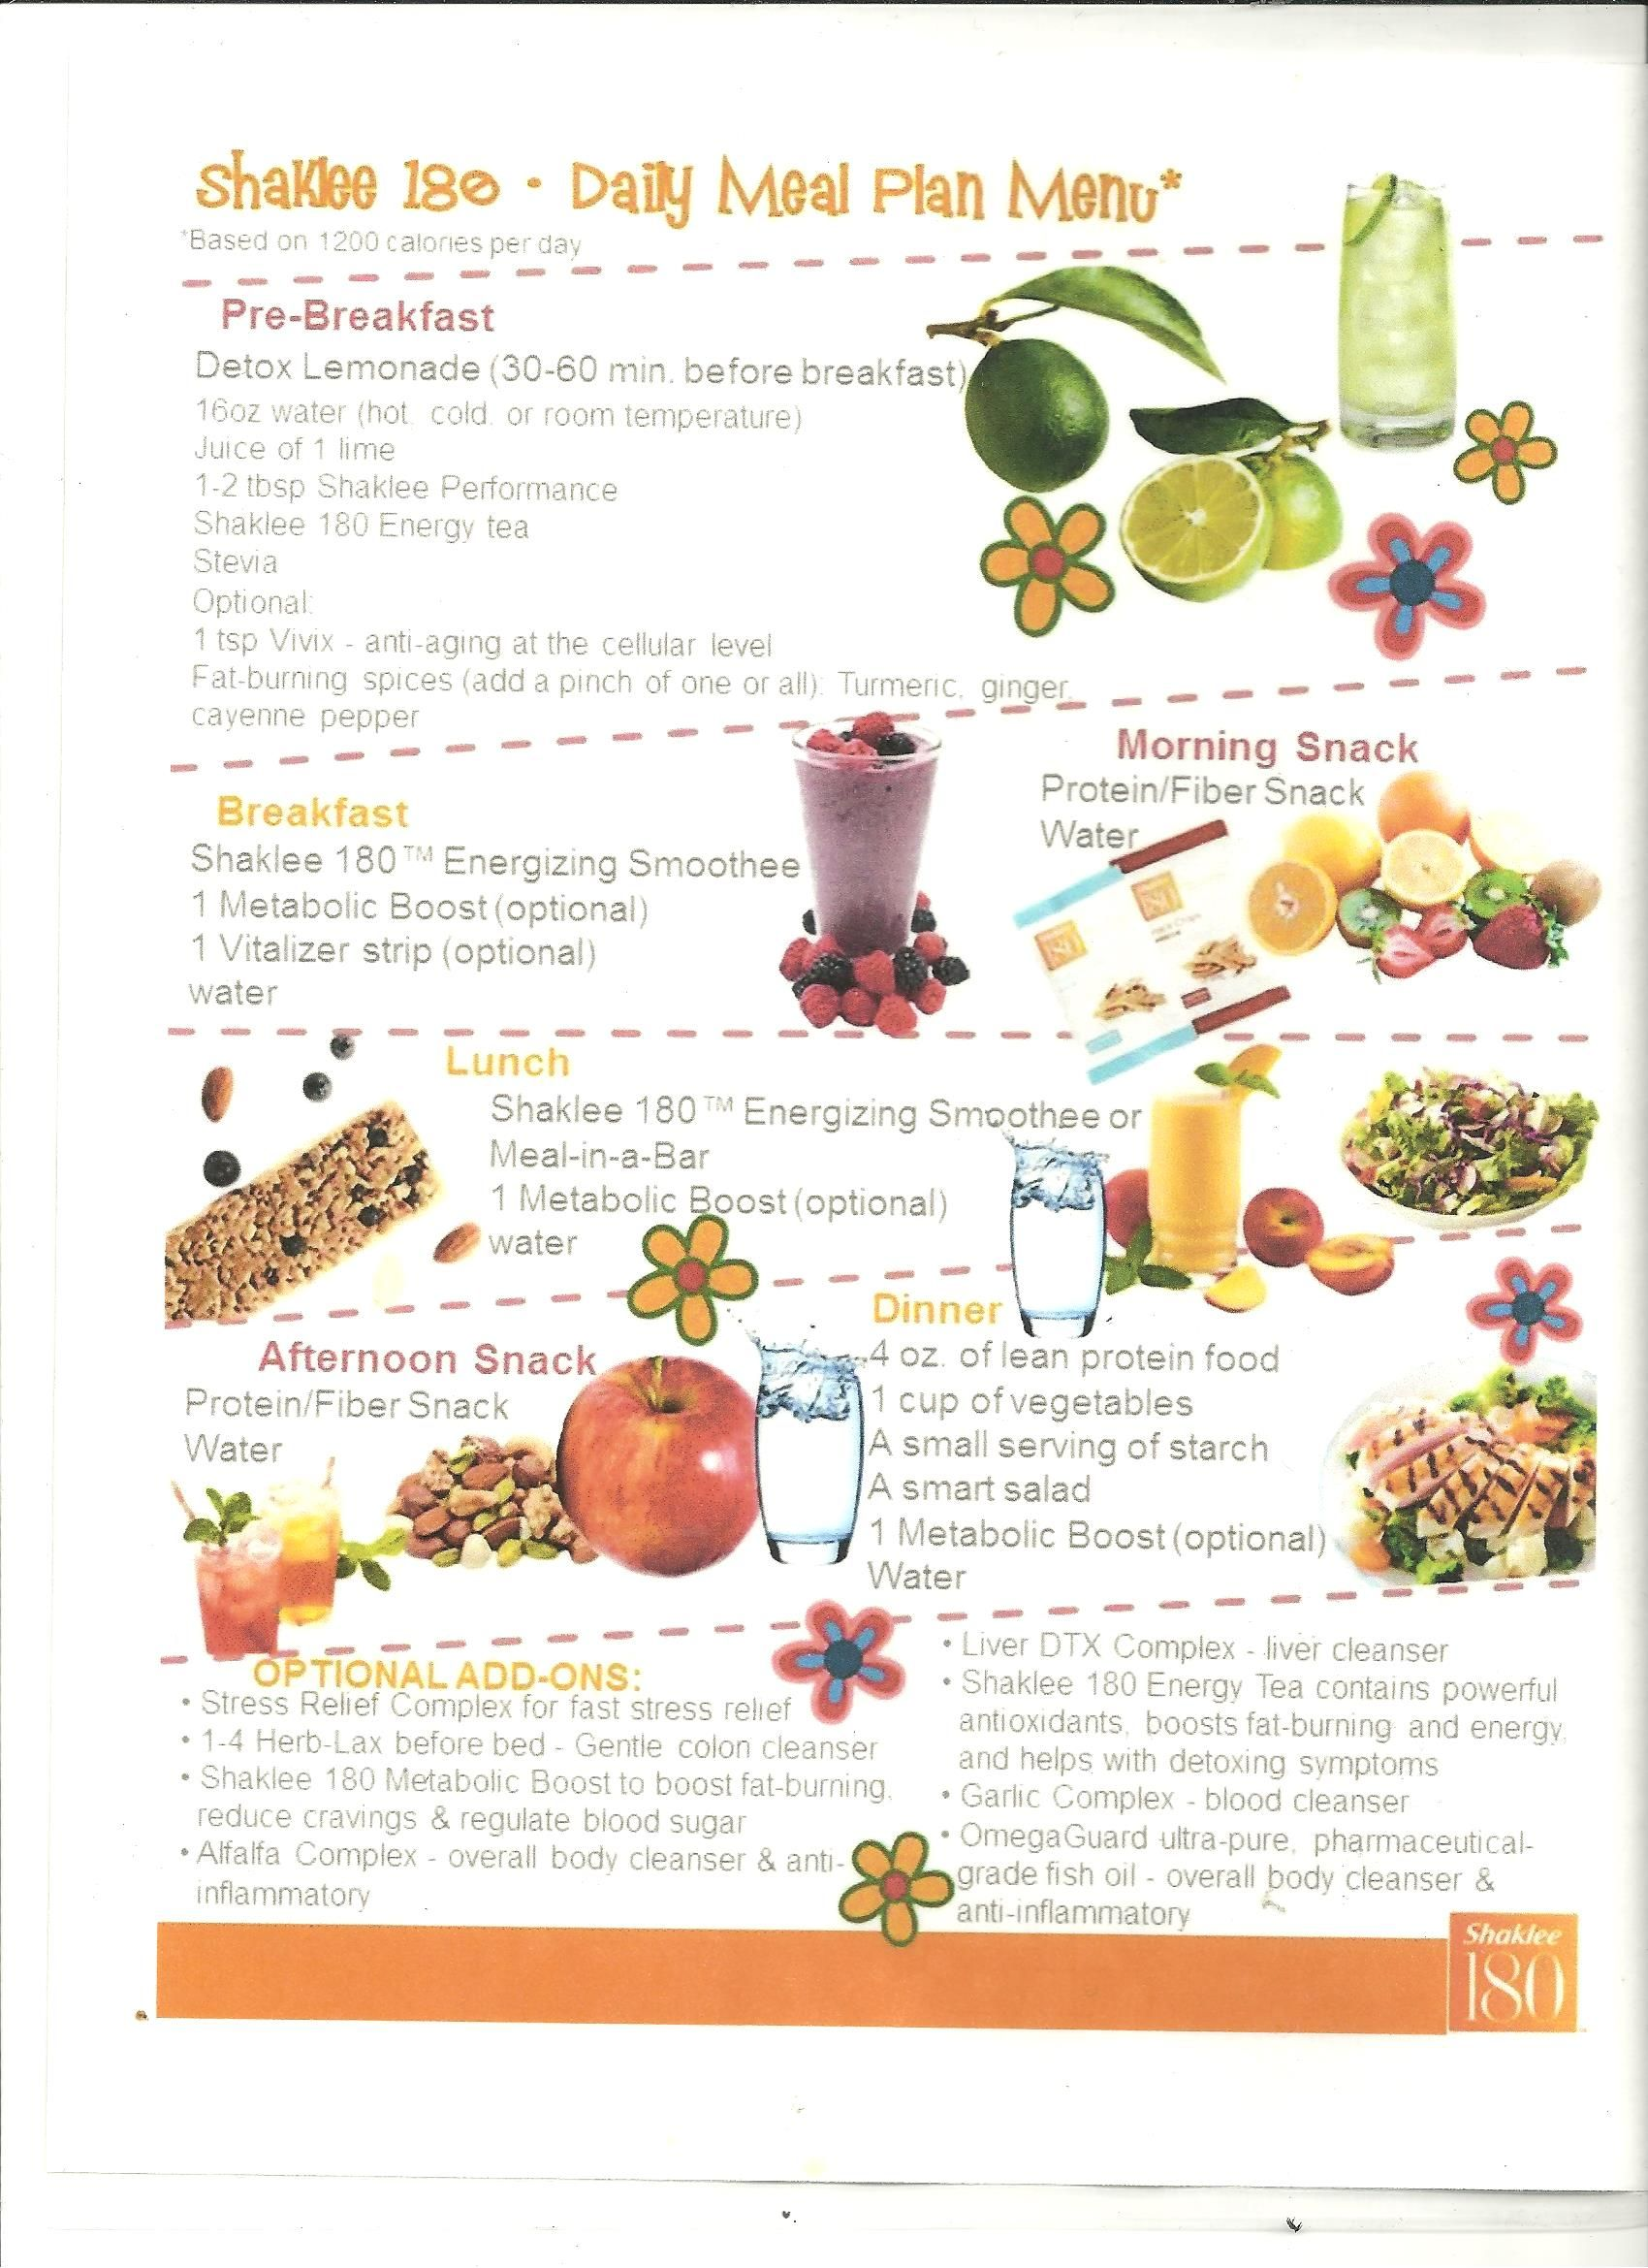 21 Day Fix Meal Plan 500 Calorie: Shaklee 180~ Daily Meal Plan Menu Duboiswellness.myshaklee